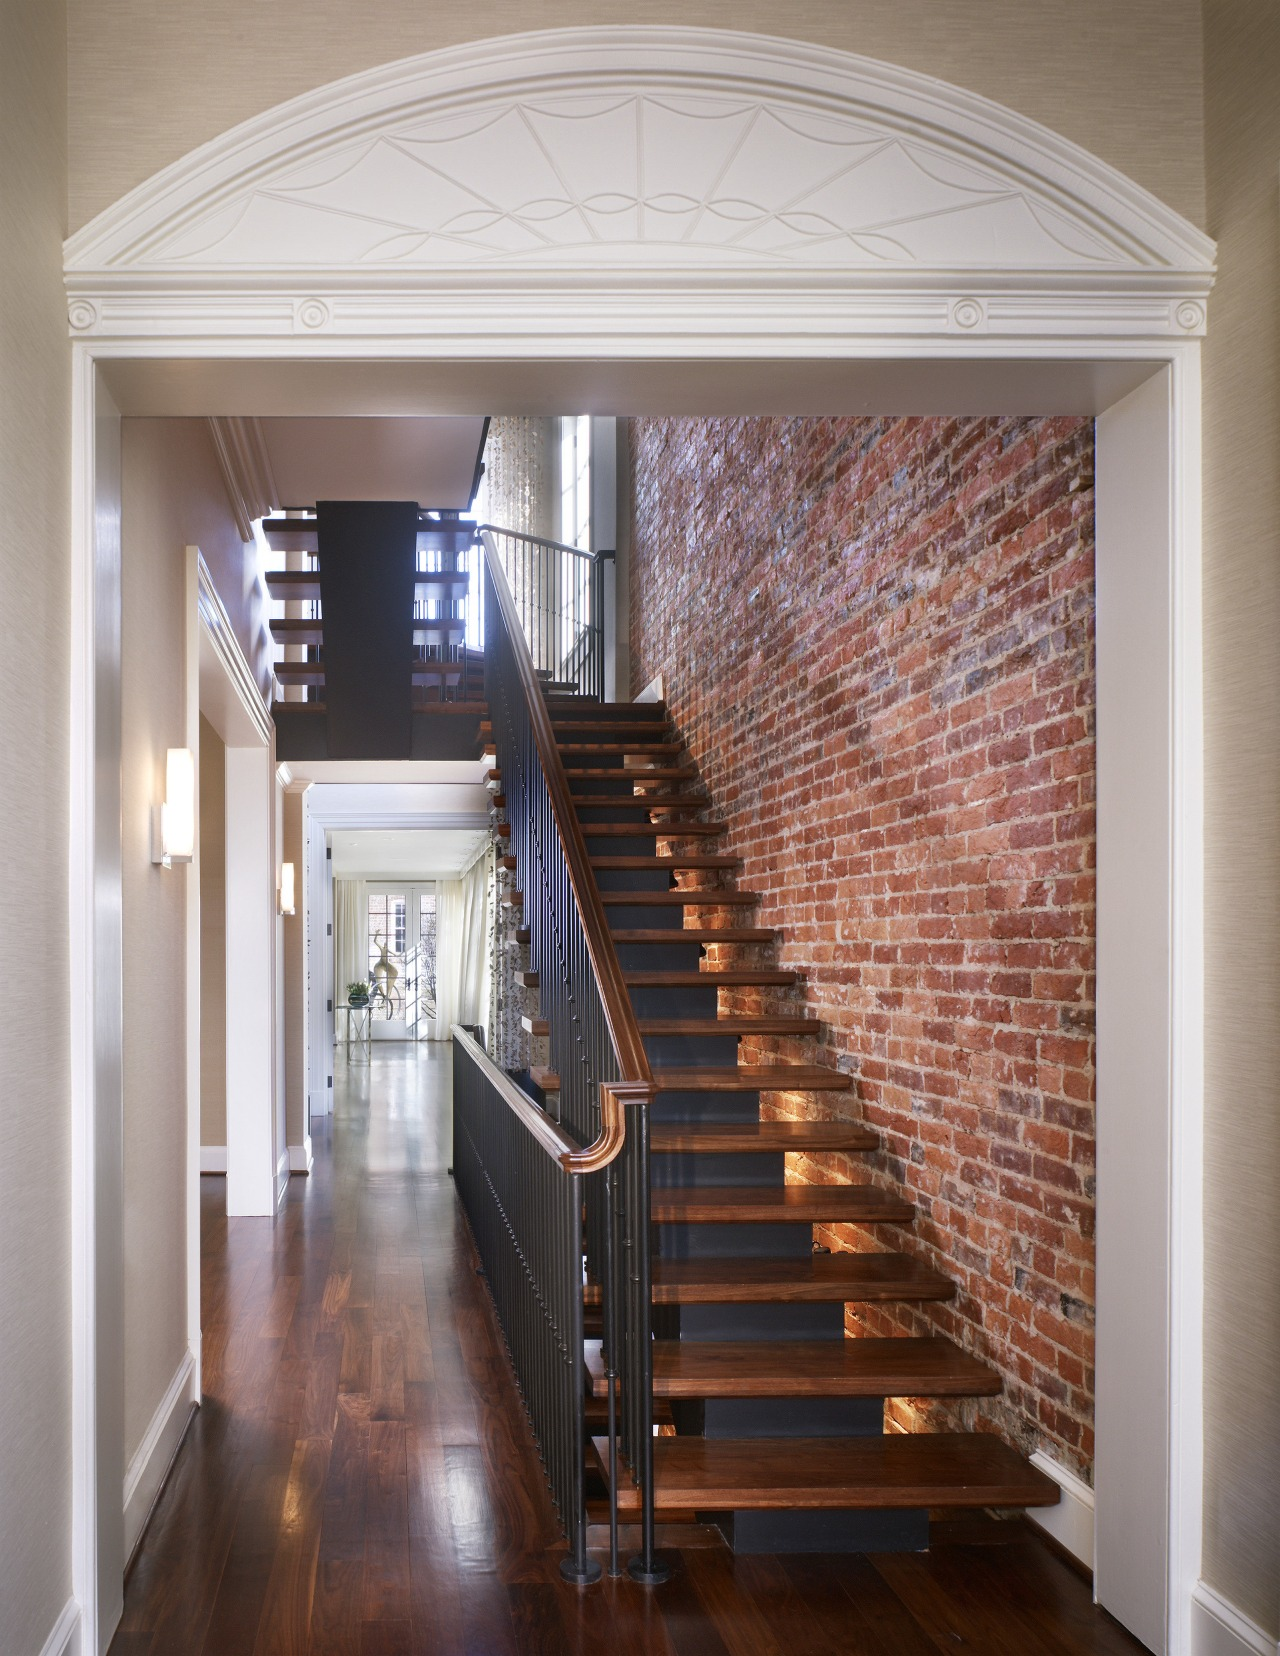 Read the renovation story here architecture, ceiling, daylighting, estate, floor, flooring, handrail, hardwood, home, interior design, real estate, stairs, window, gray